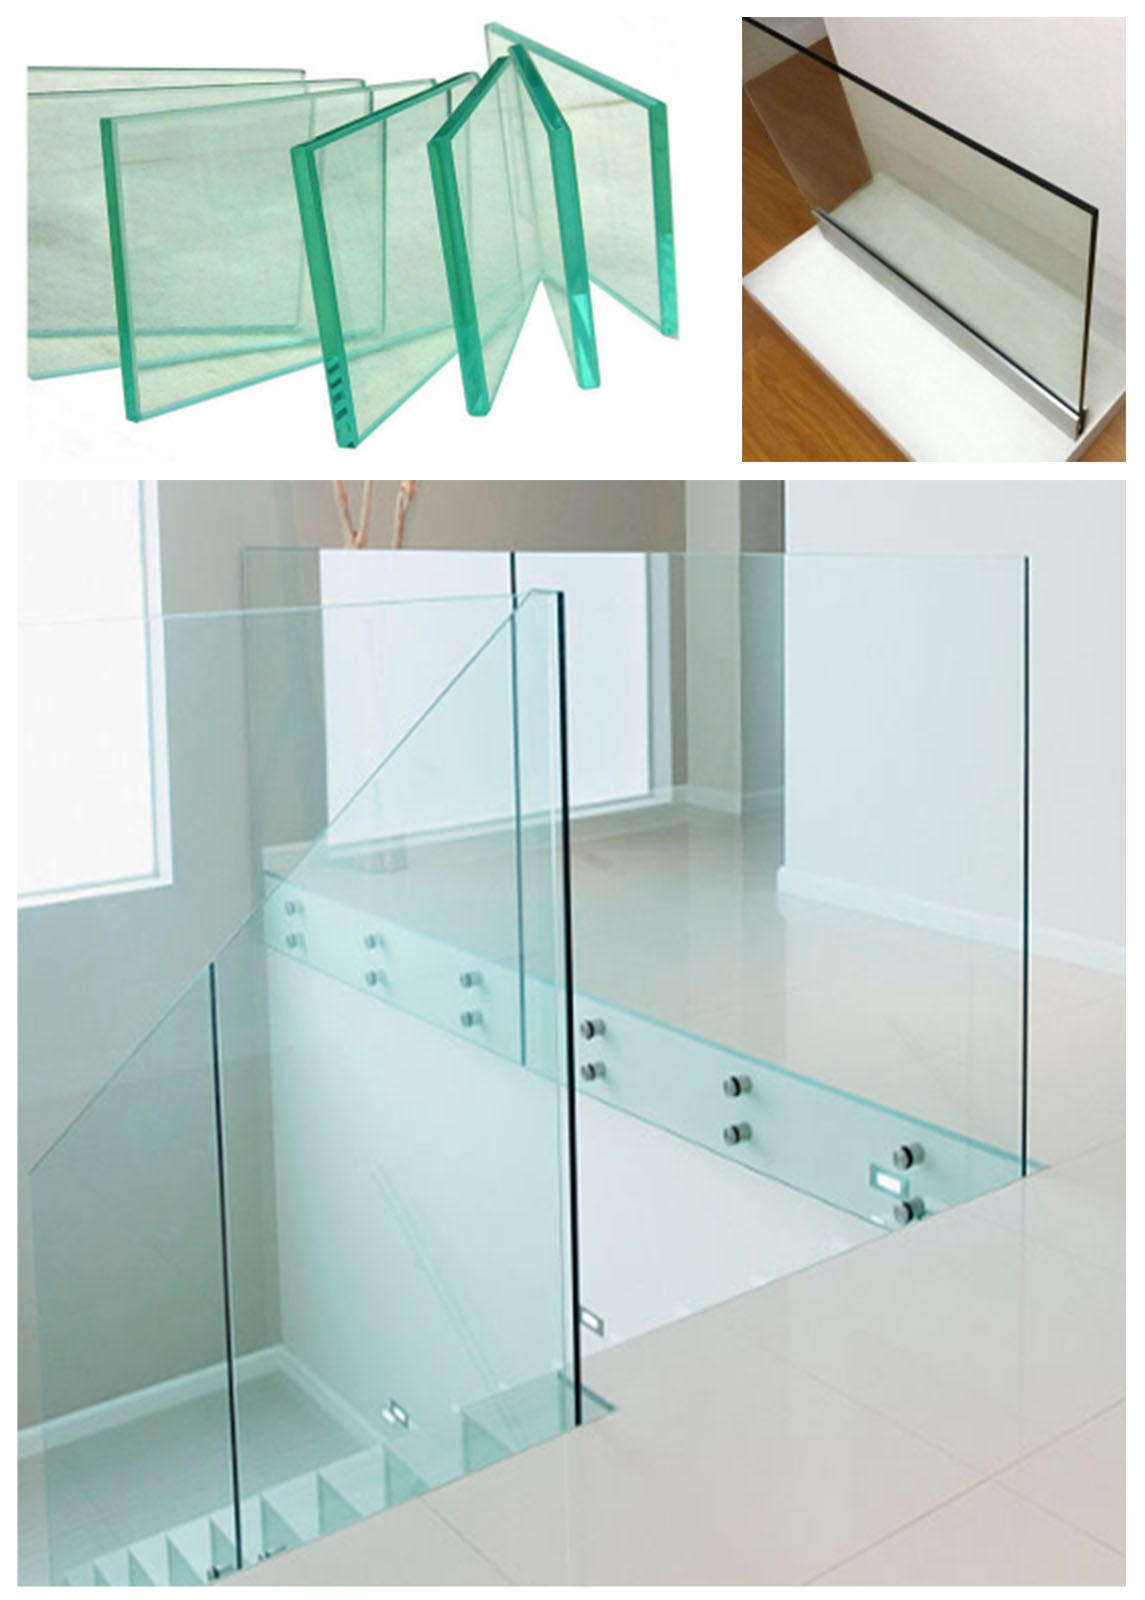 JinYi fencing laminated glass sheets supplier for safety